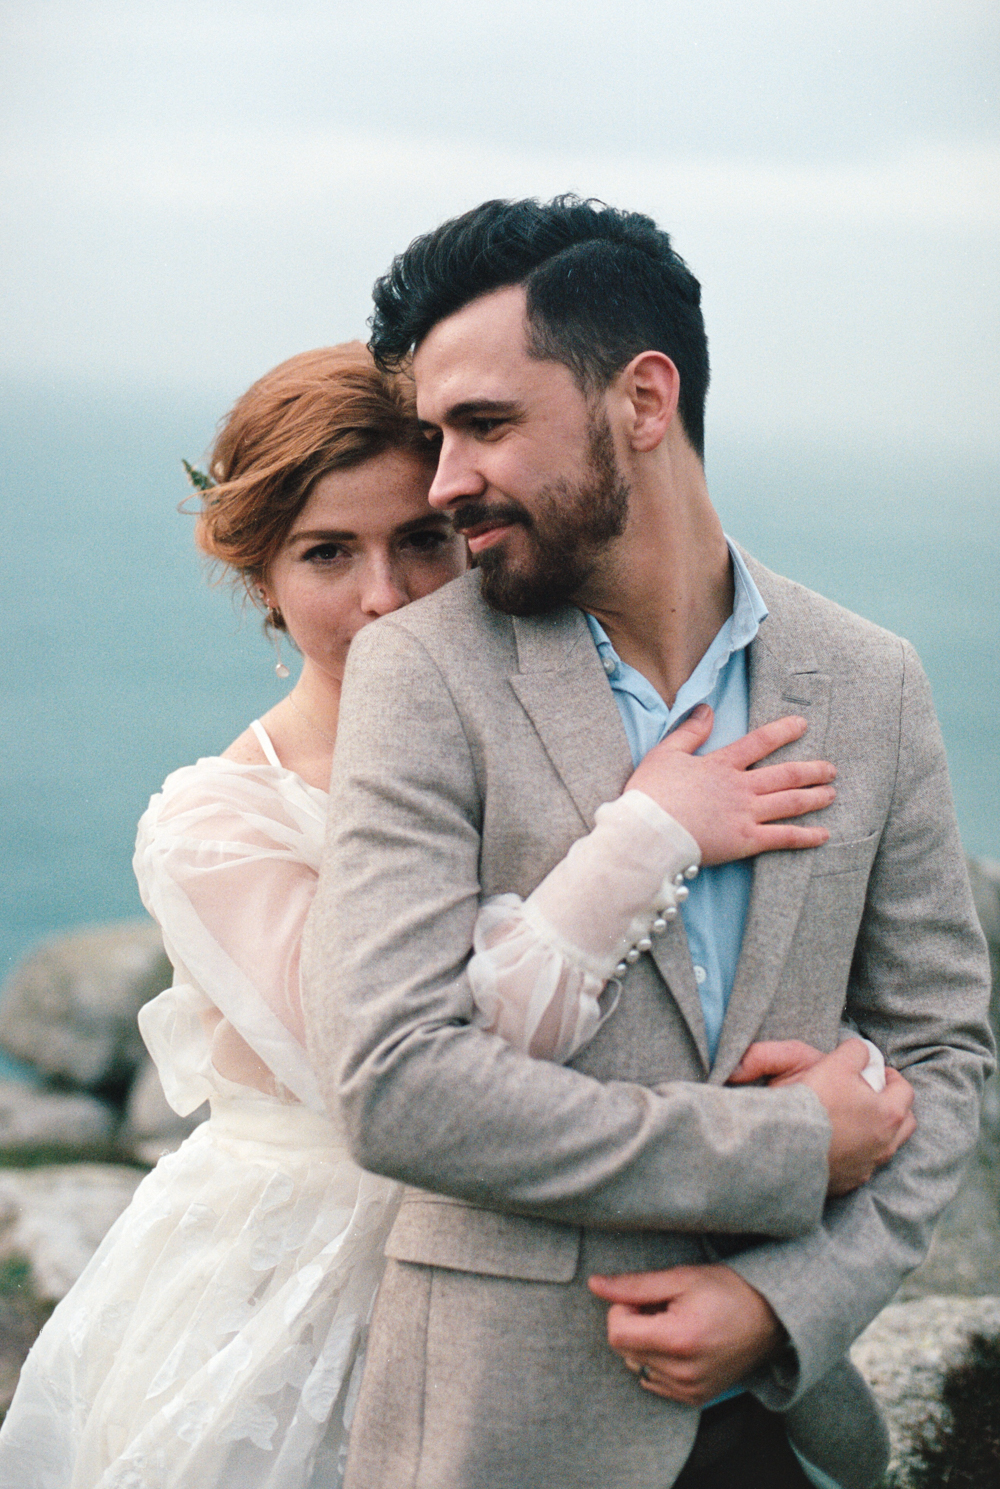 Elopement and Wedding Photography in Cornwall by Olivia Bossert